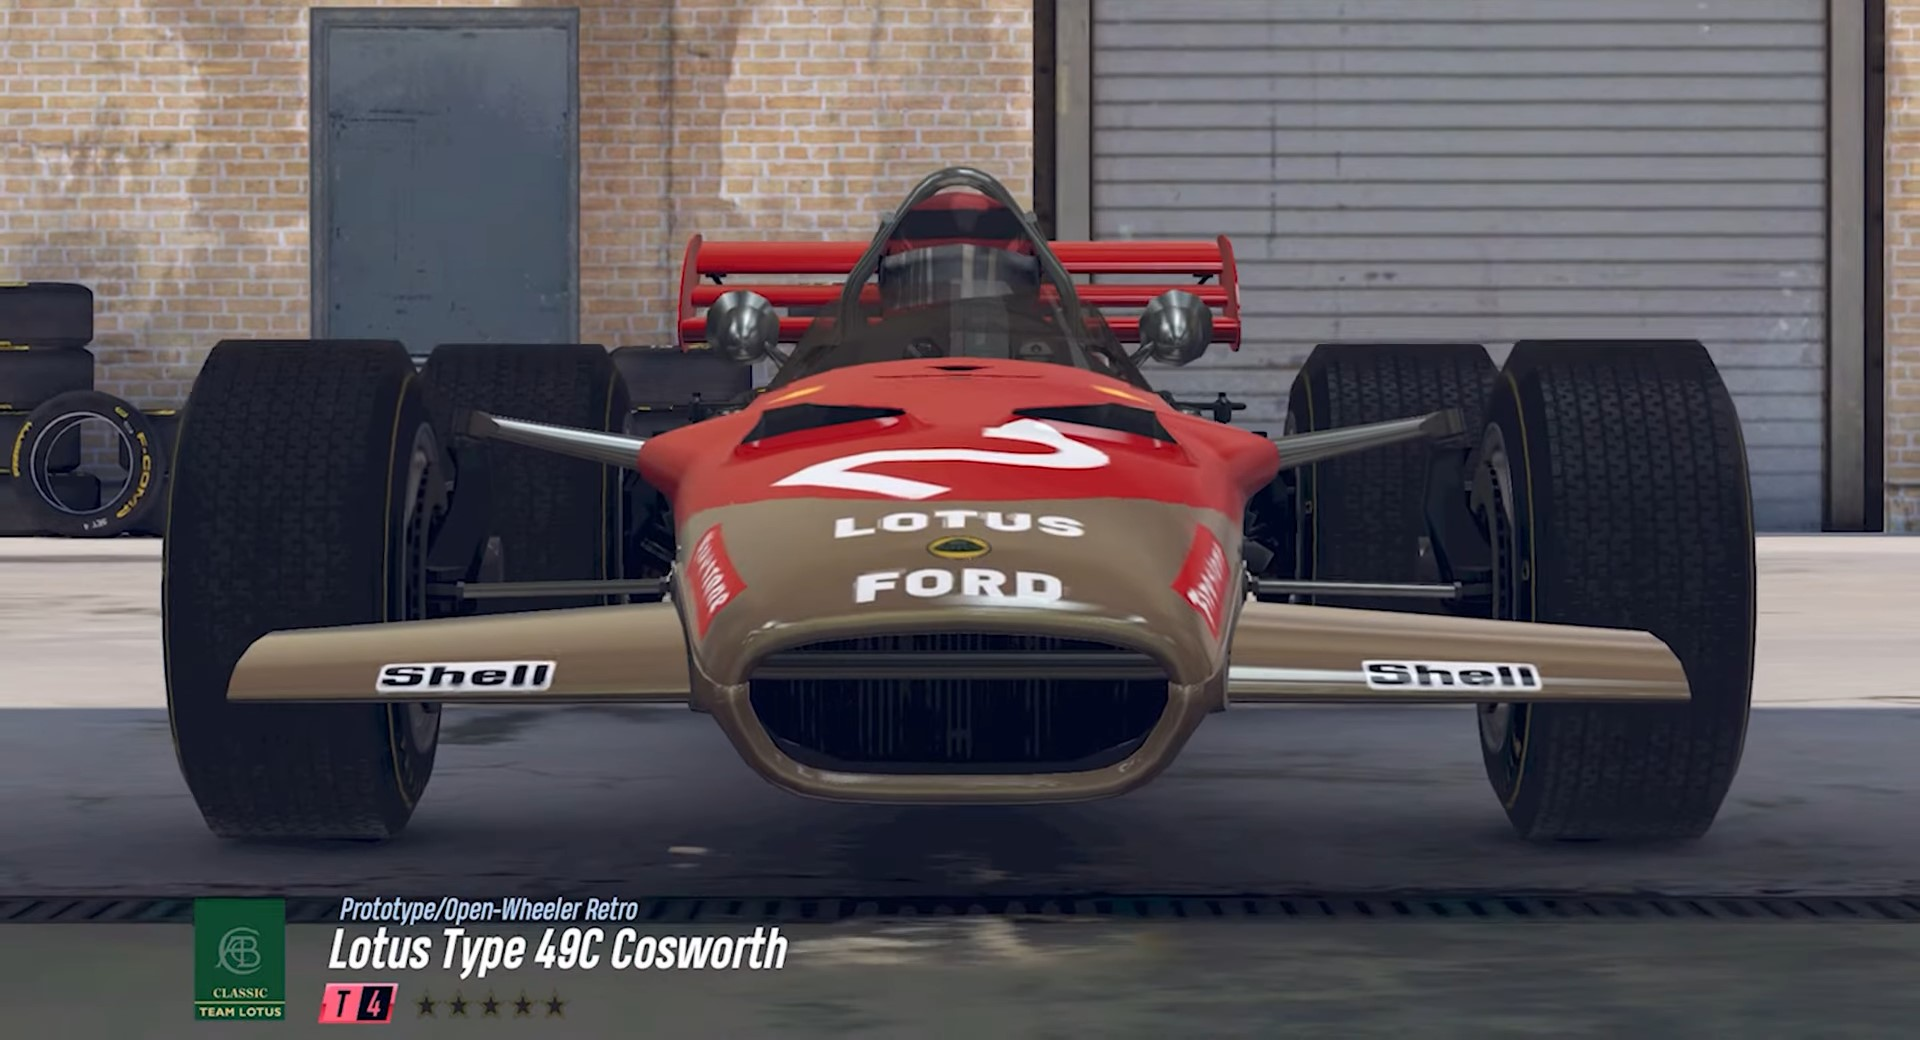 Popular Racing Game Project Cars Is Getting A Mobile Version On March 23